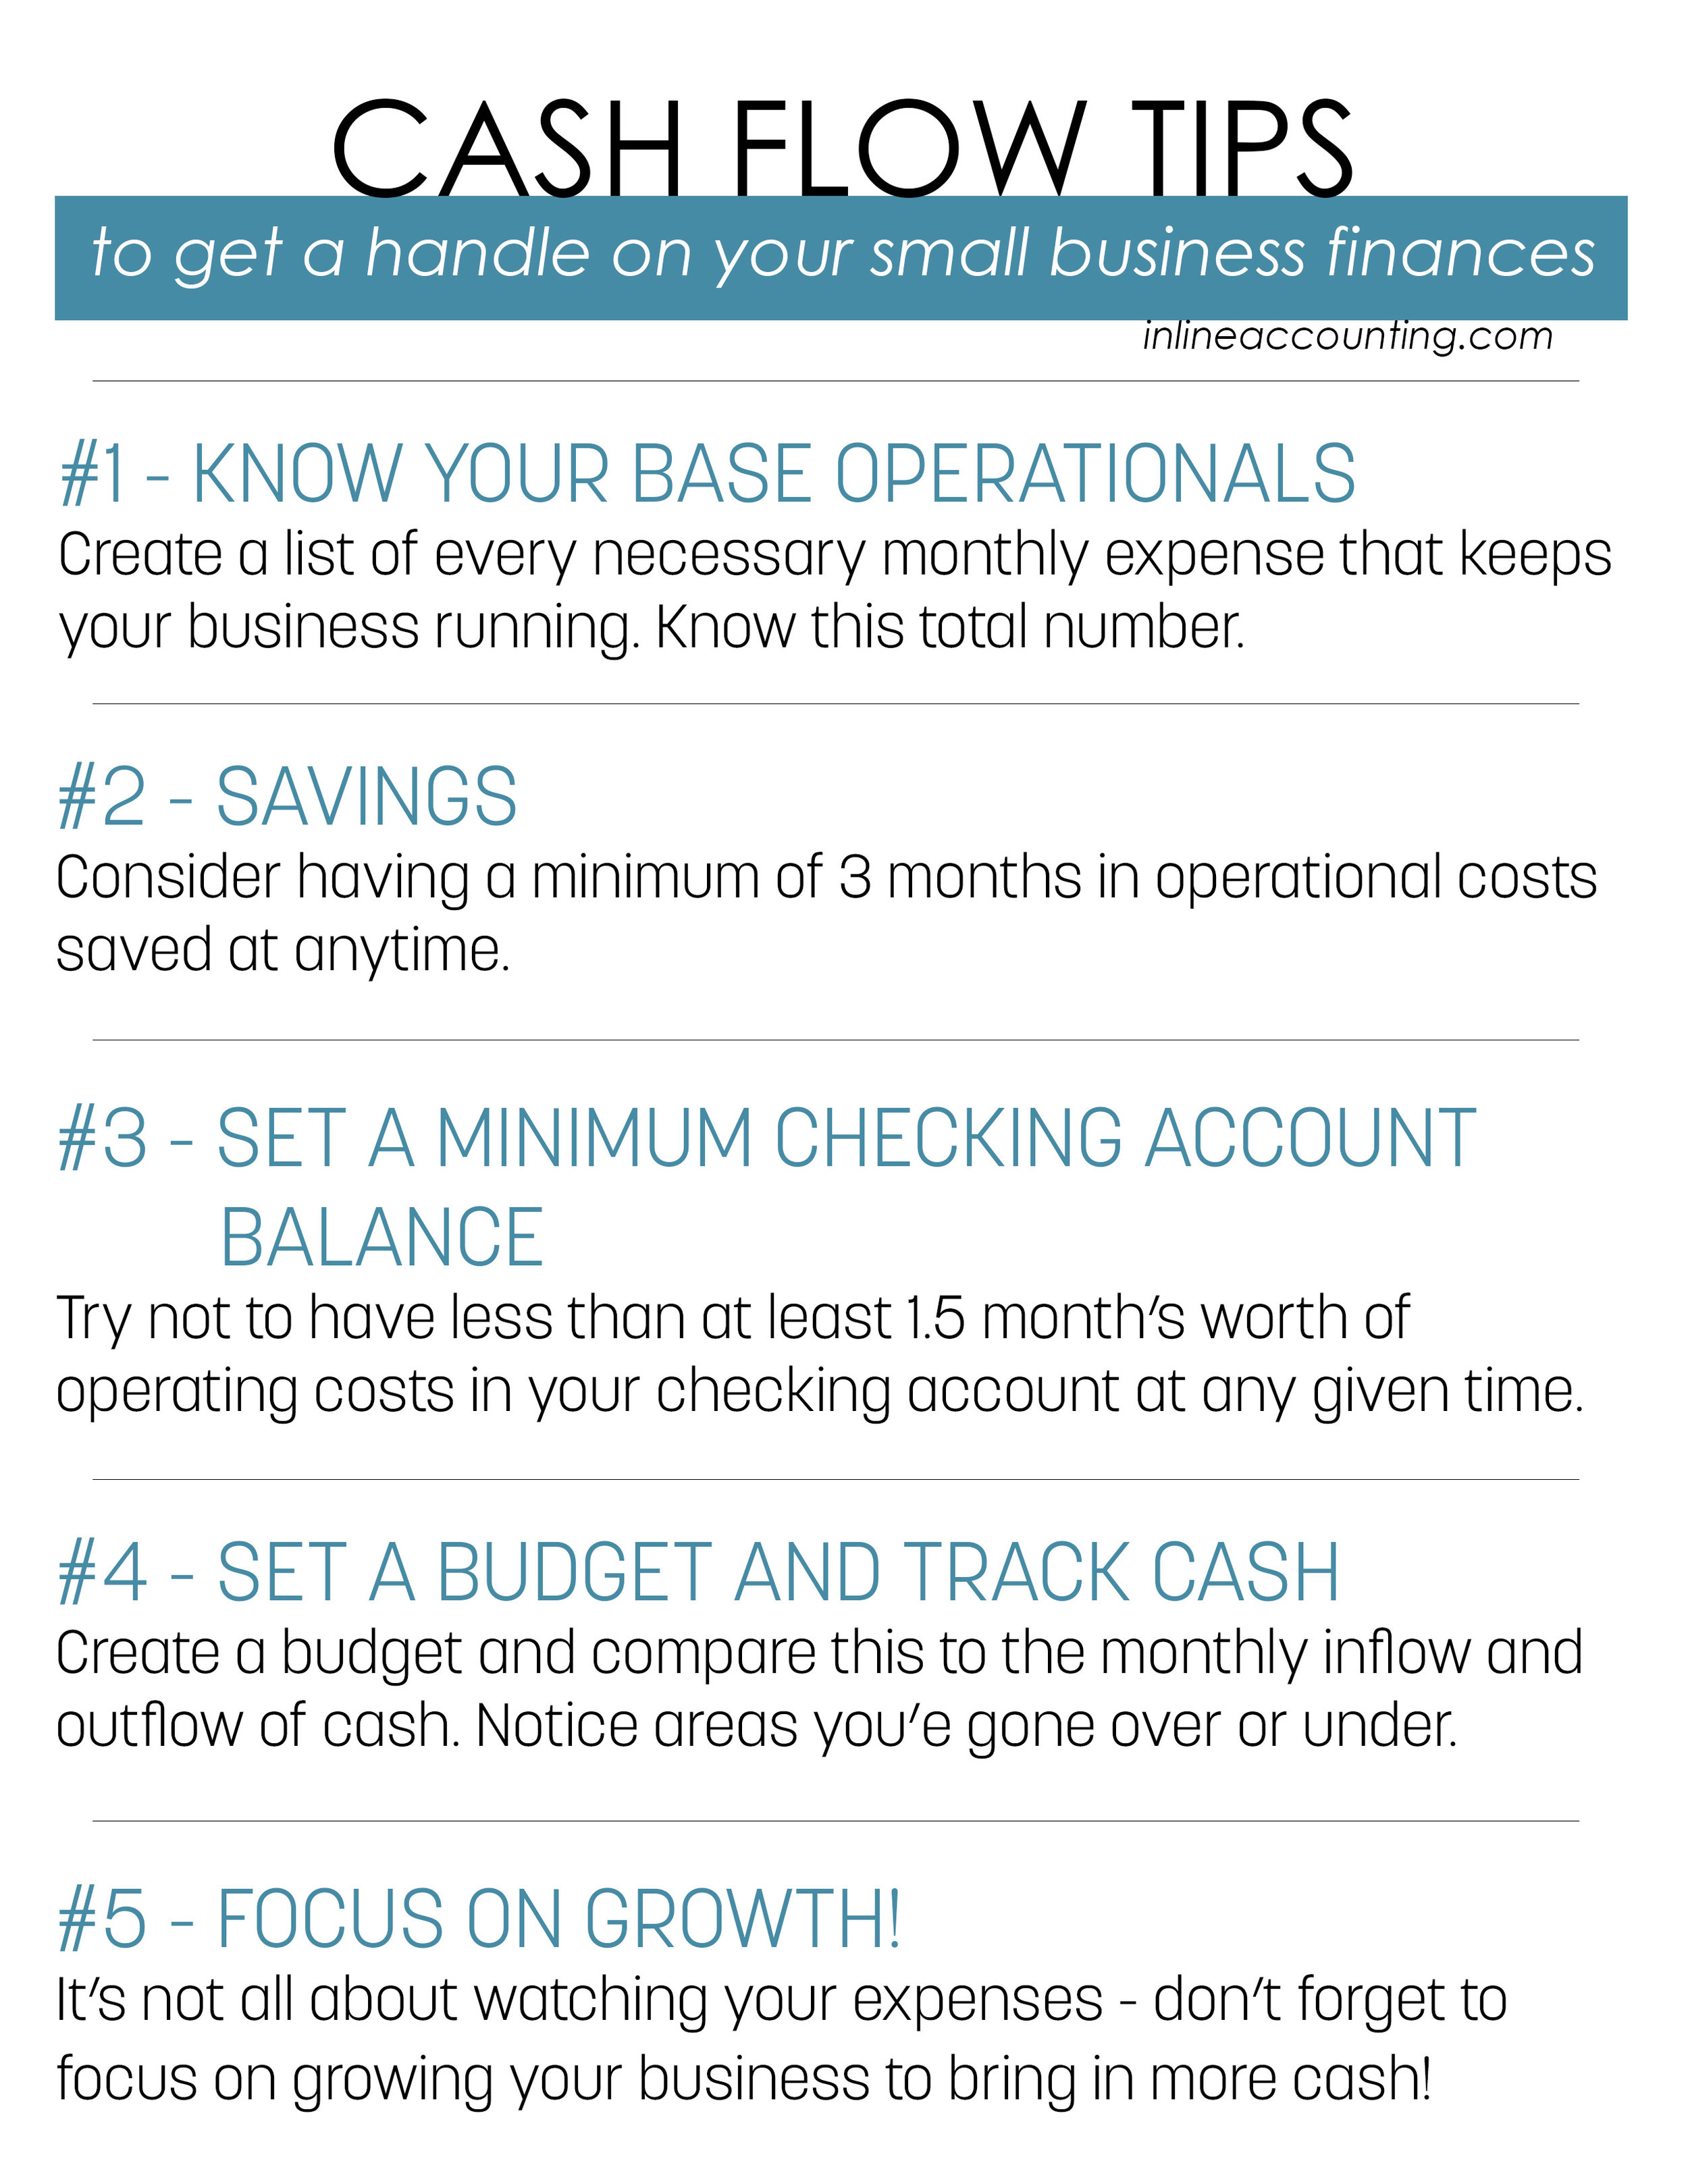 Cash Flow Tips.jpg